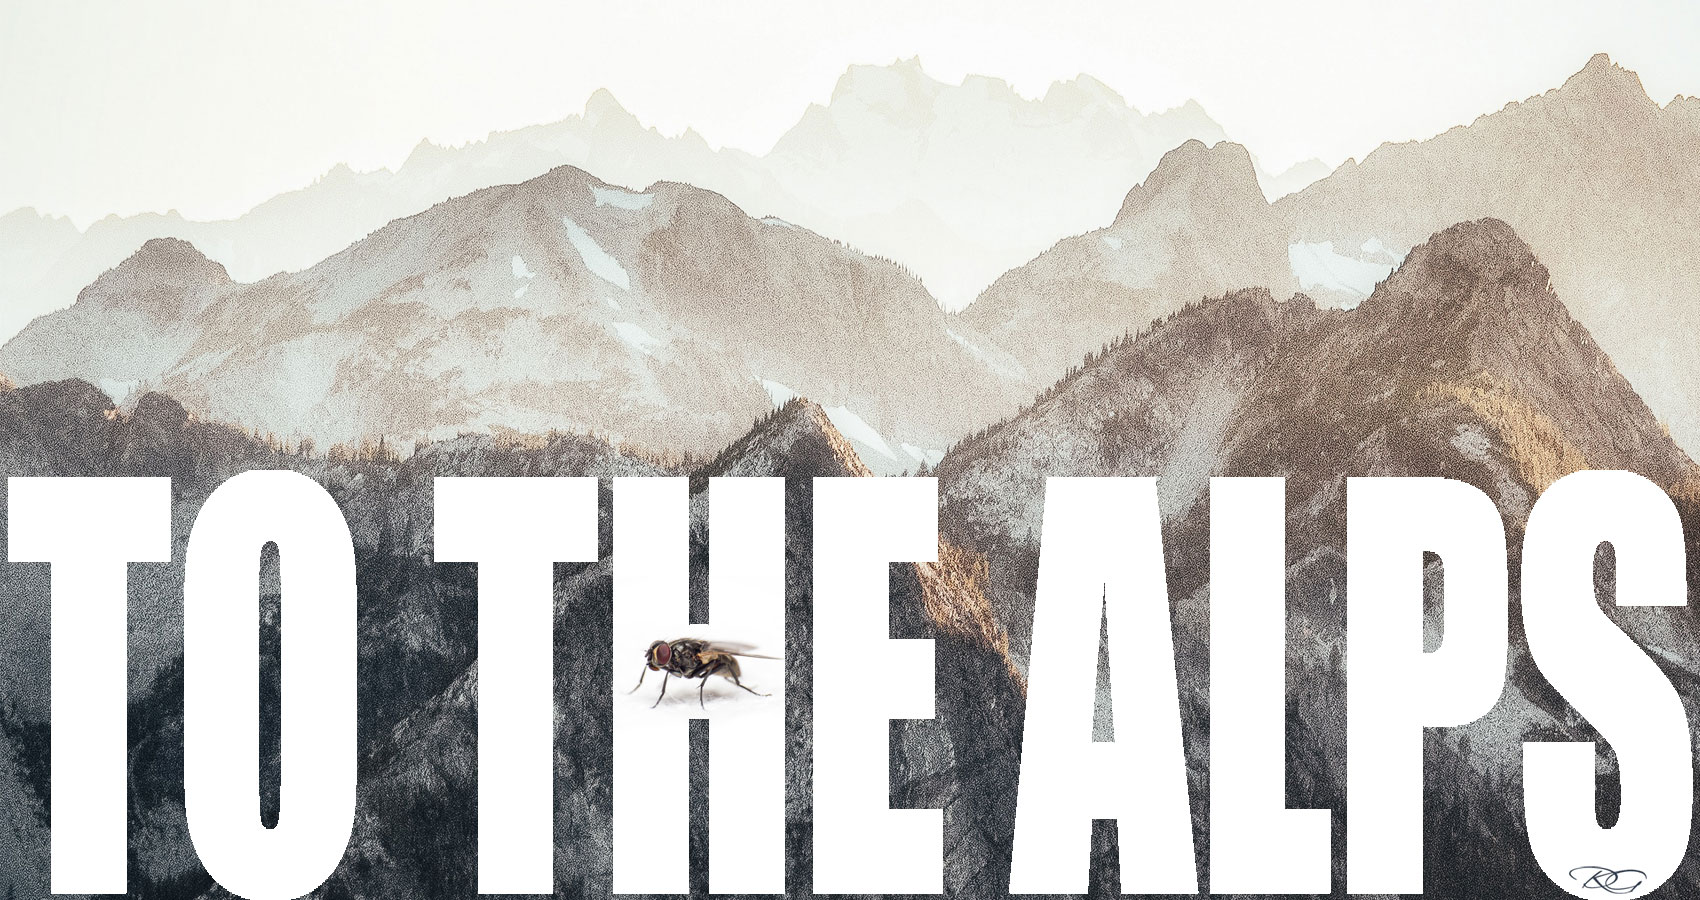 To The Alps, flash fiction by Matthew Roy Davey at Spillwords.com